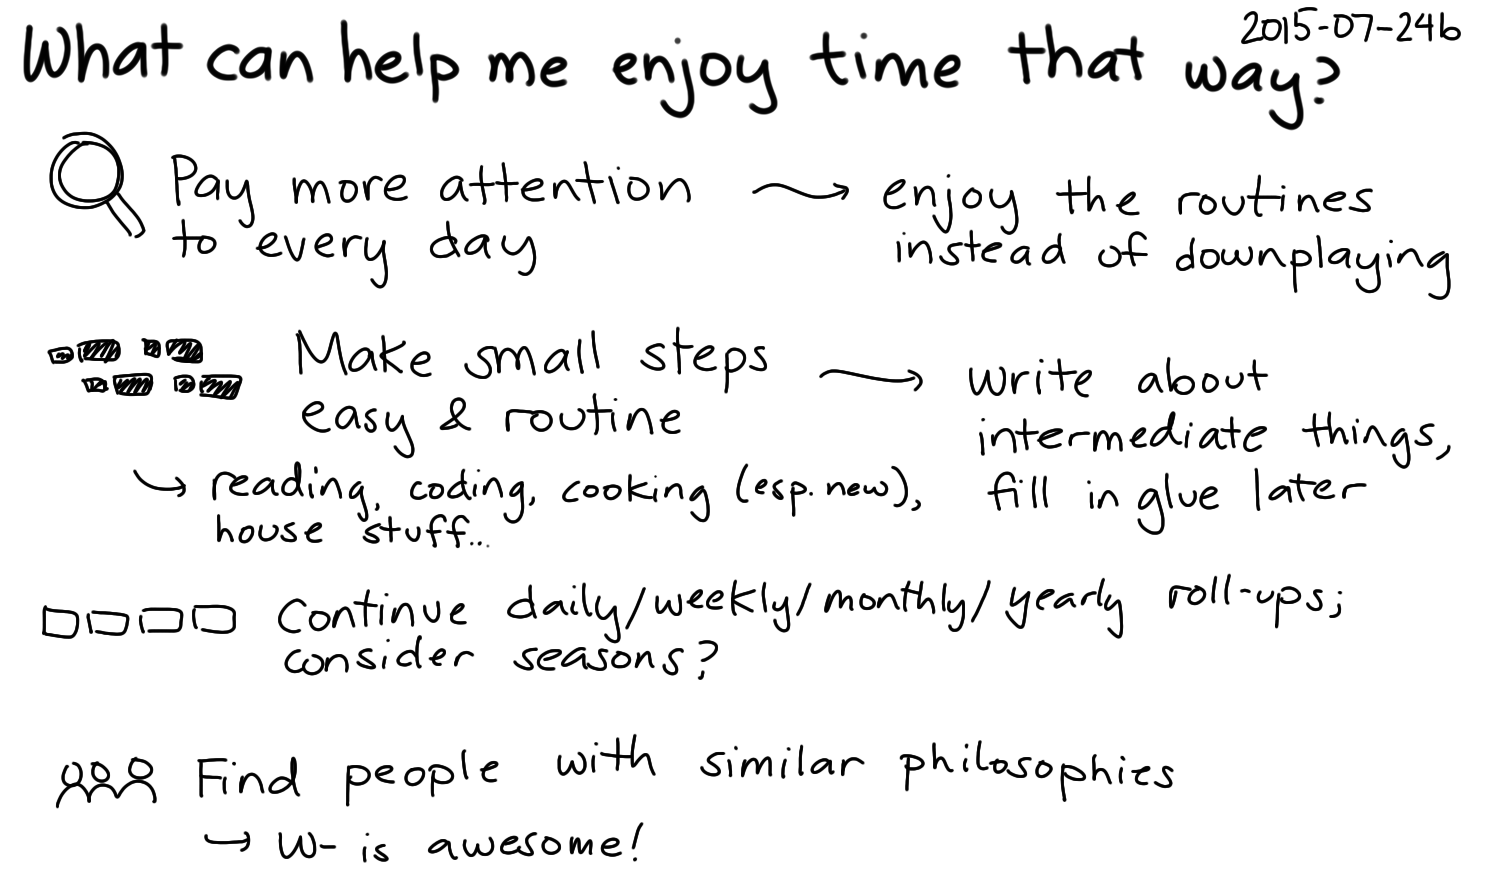 2015-07-24b What can help me enjoy time that way -- index card #time.png